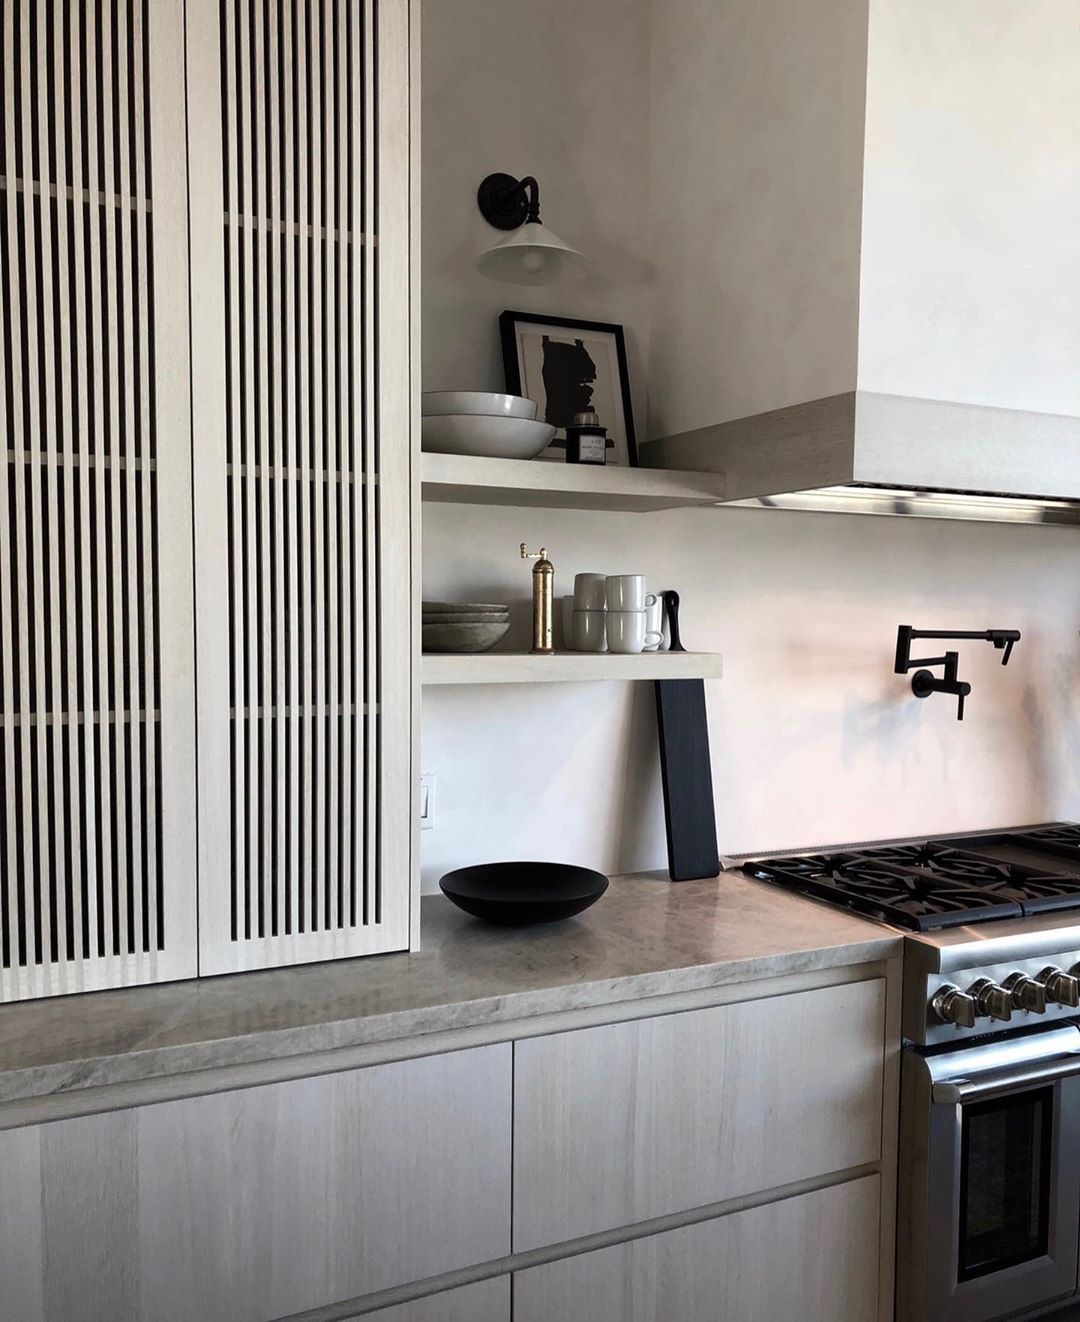 Jake Arnold On Instagram Bleaching Cabinets Is Always An Art And I Love That We Were Able To Achieve T In 2020 Kitchen Interior Home Decor Styles Western Home Decor